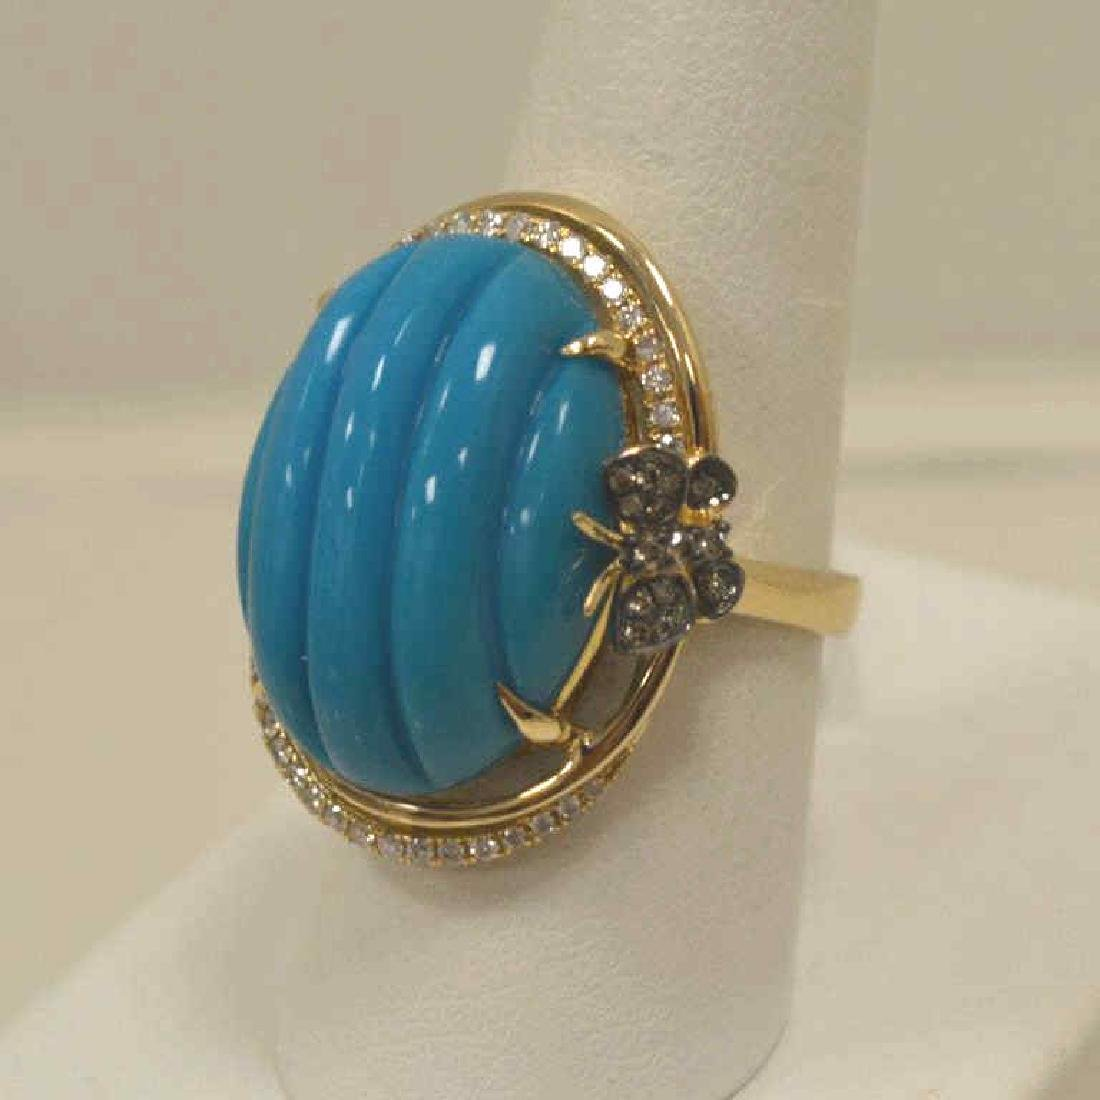 14kt yellow gold turquoise and diamond ring - 3